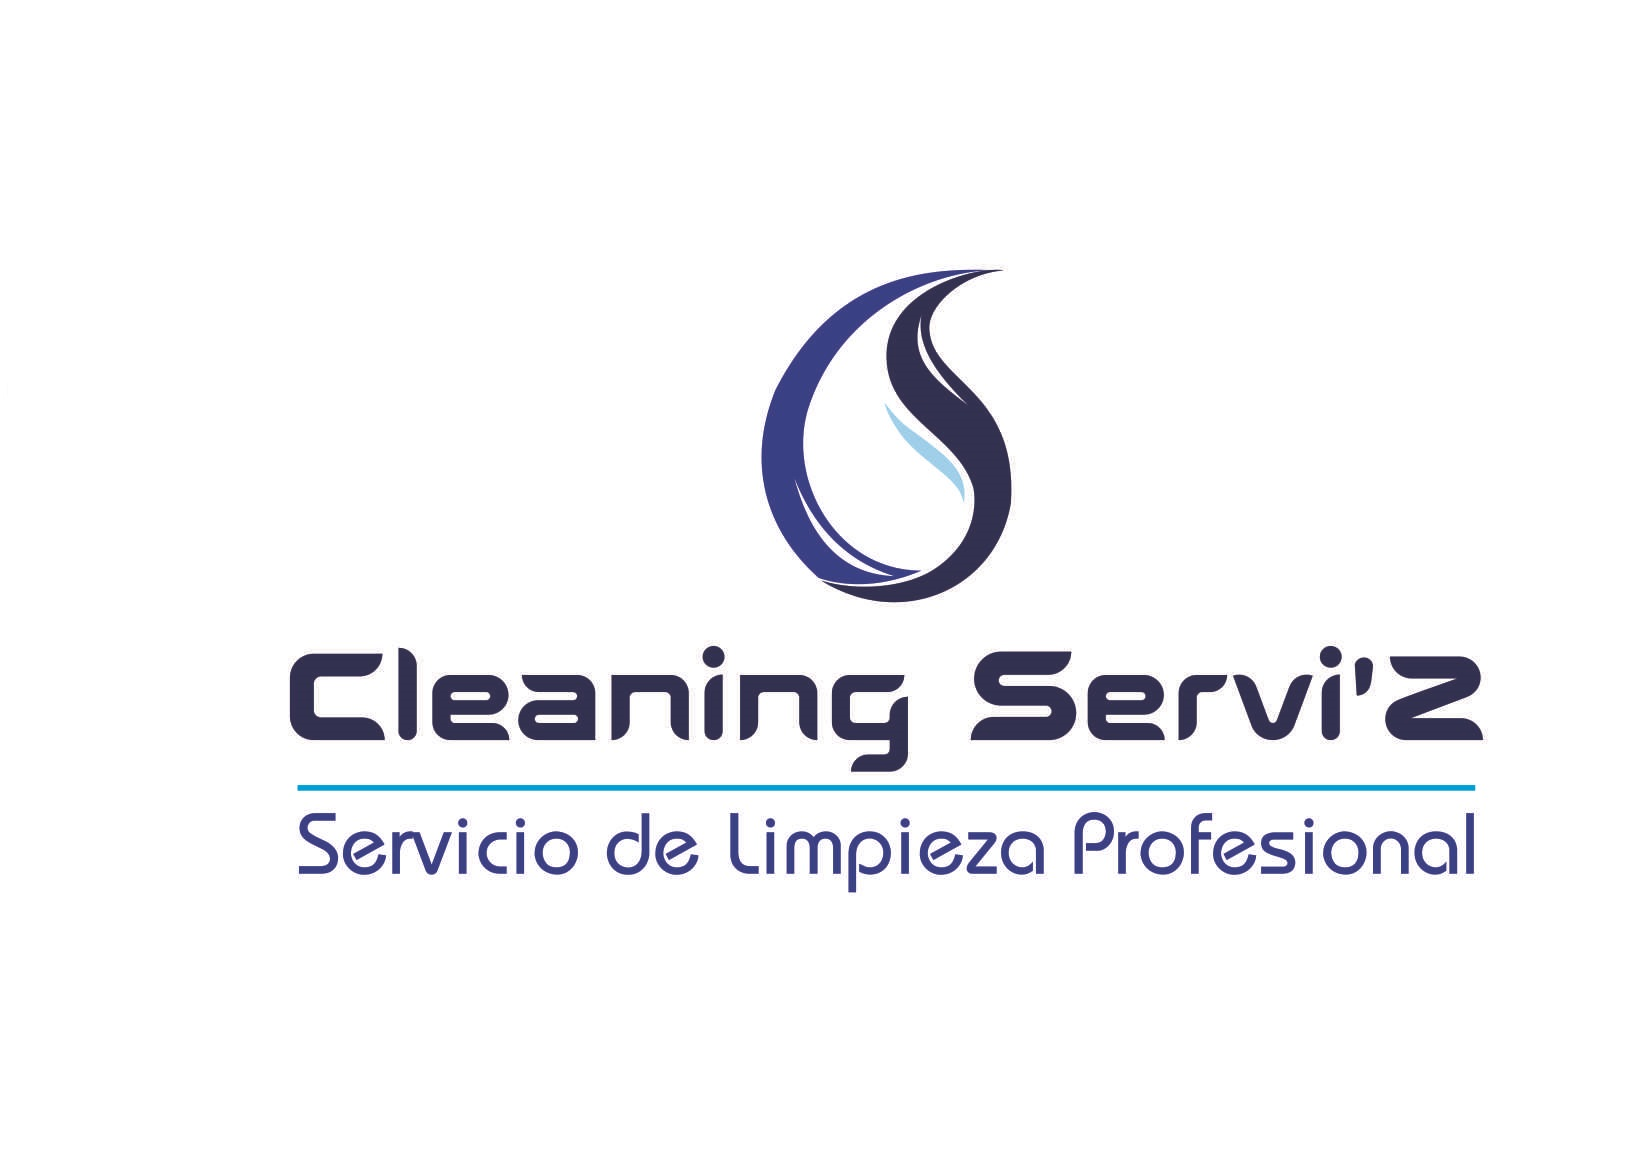 Cleaning Servi'Z Sac